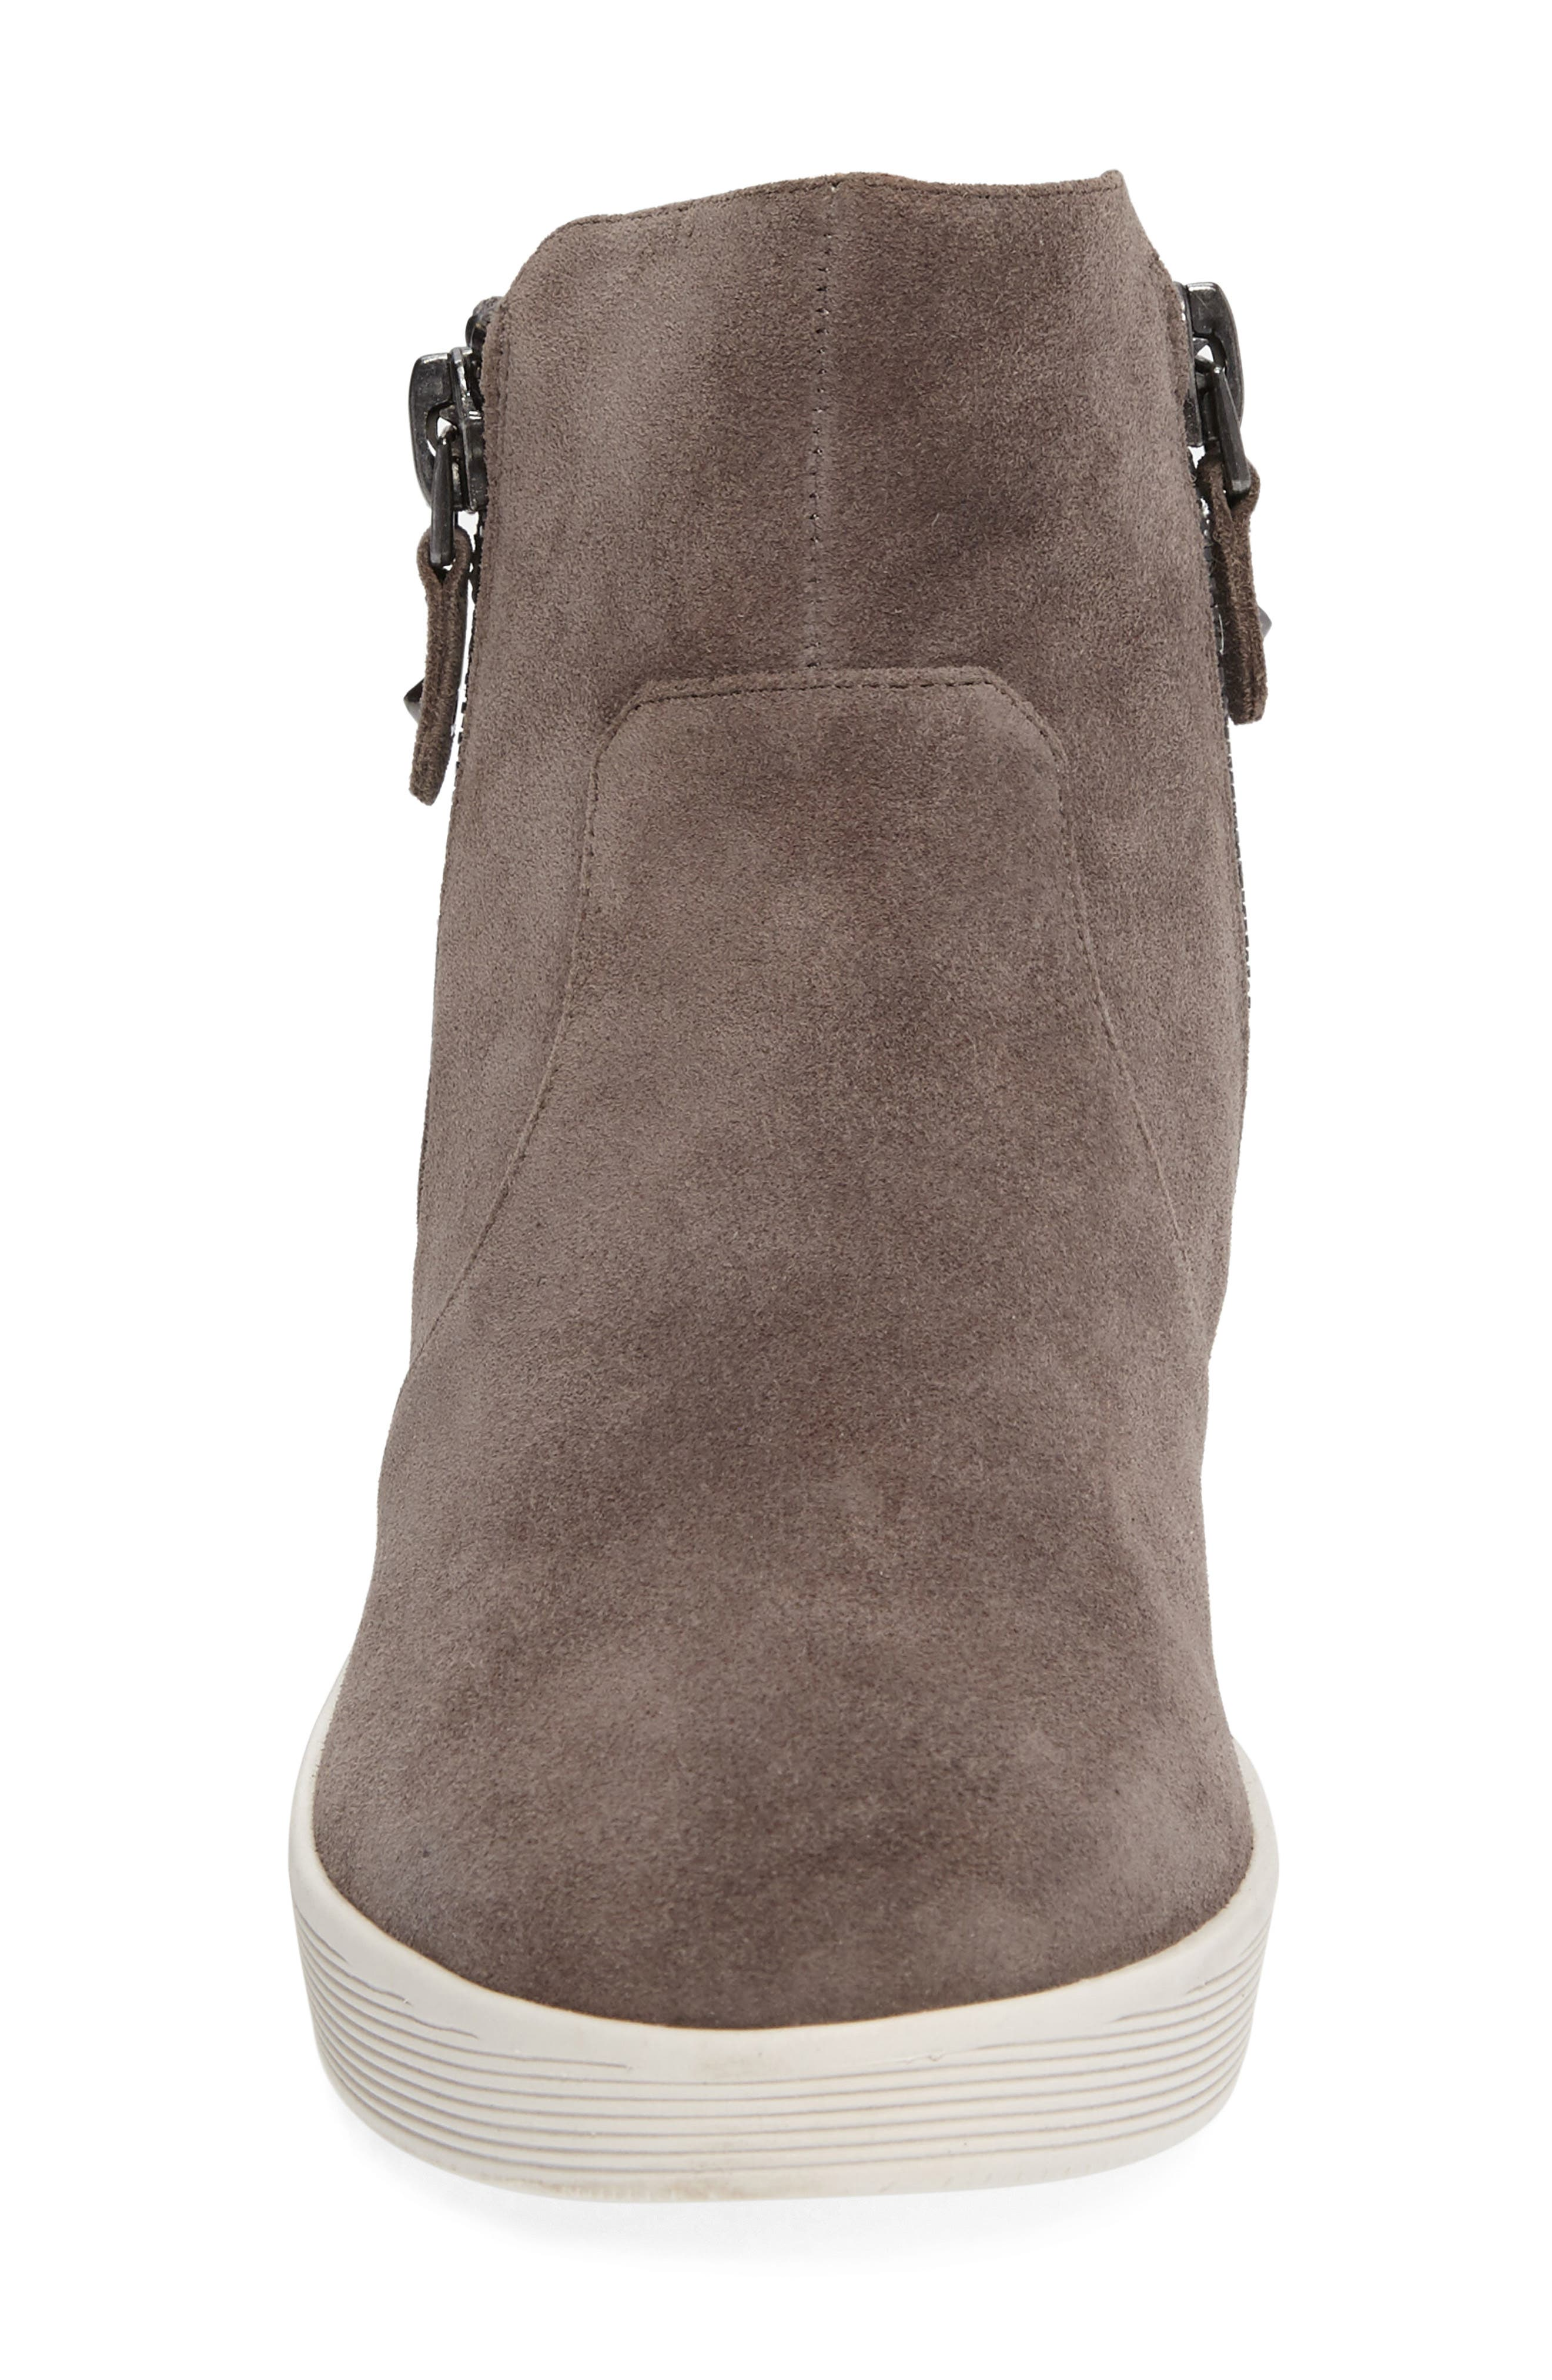 GENTLE SOULS BY KENNETH COLE, 'Harper' Sneaker Bootie, Alternate thumbnail 3, color, GREY LEATHER